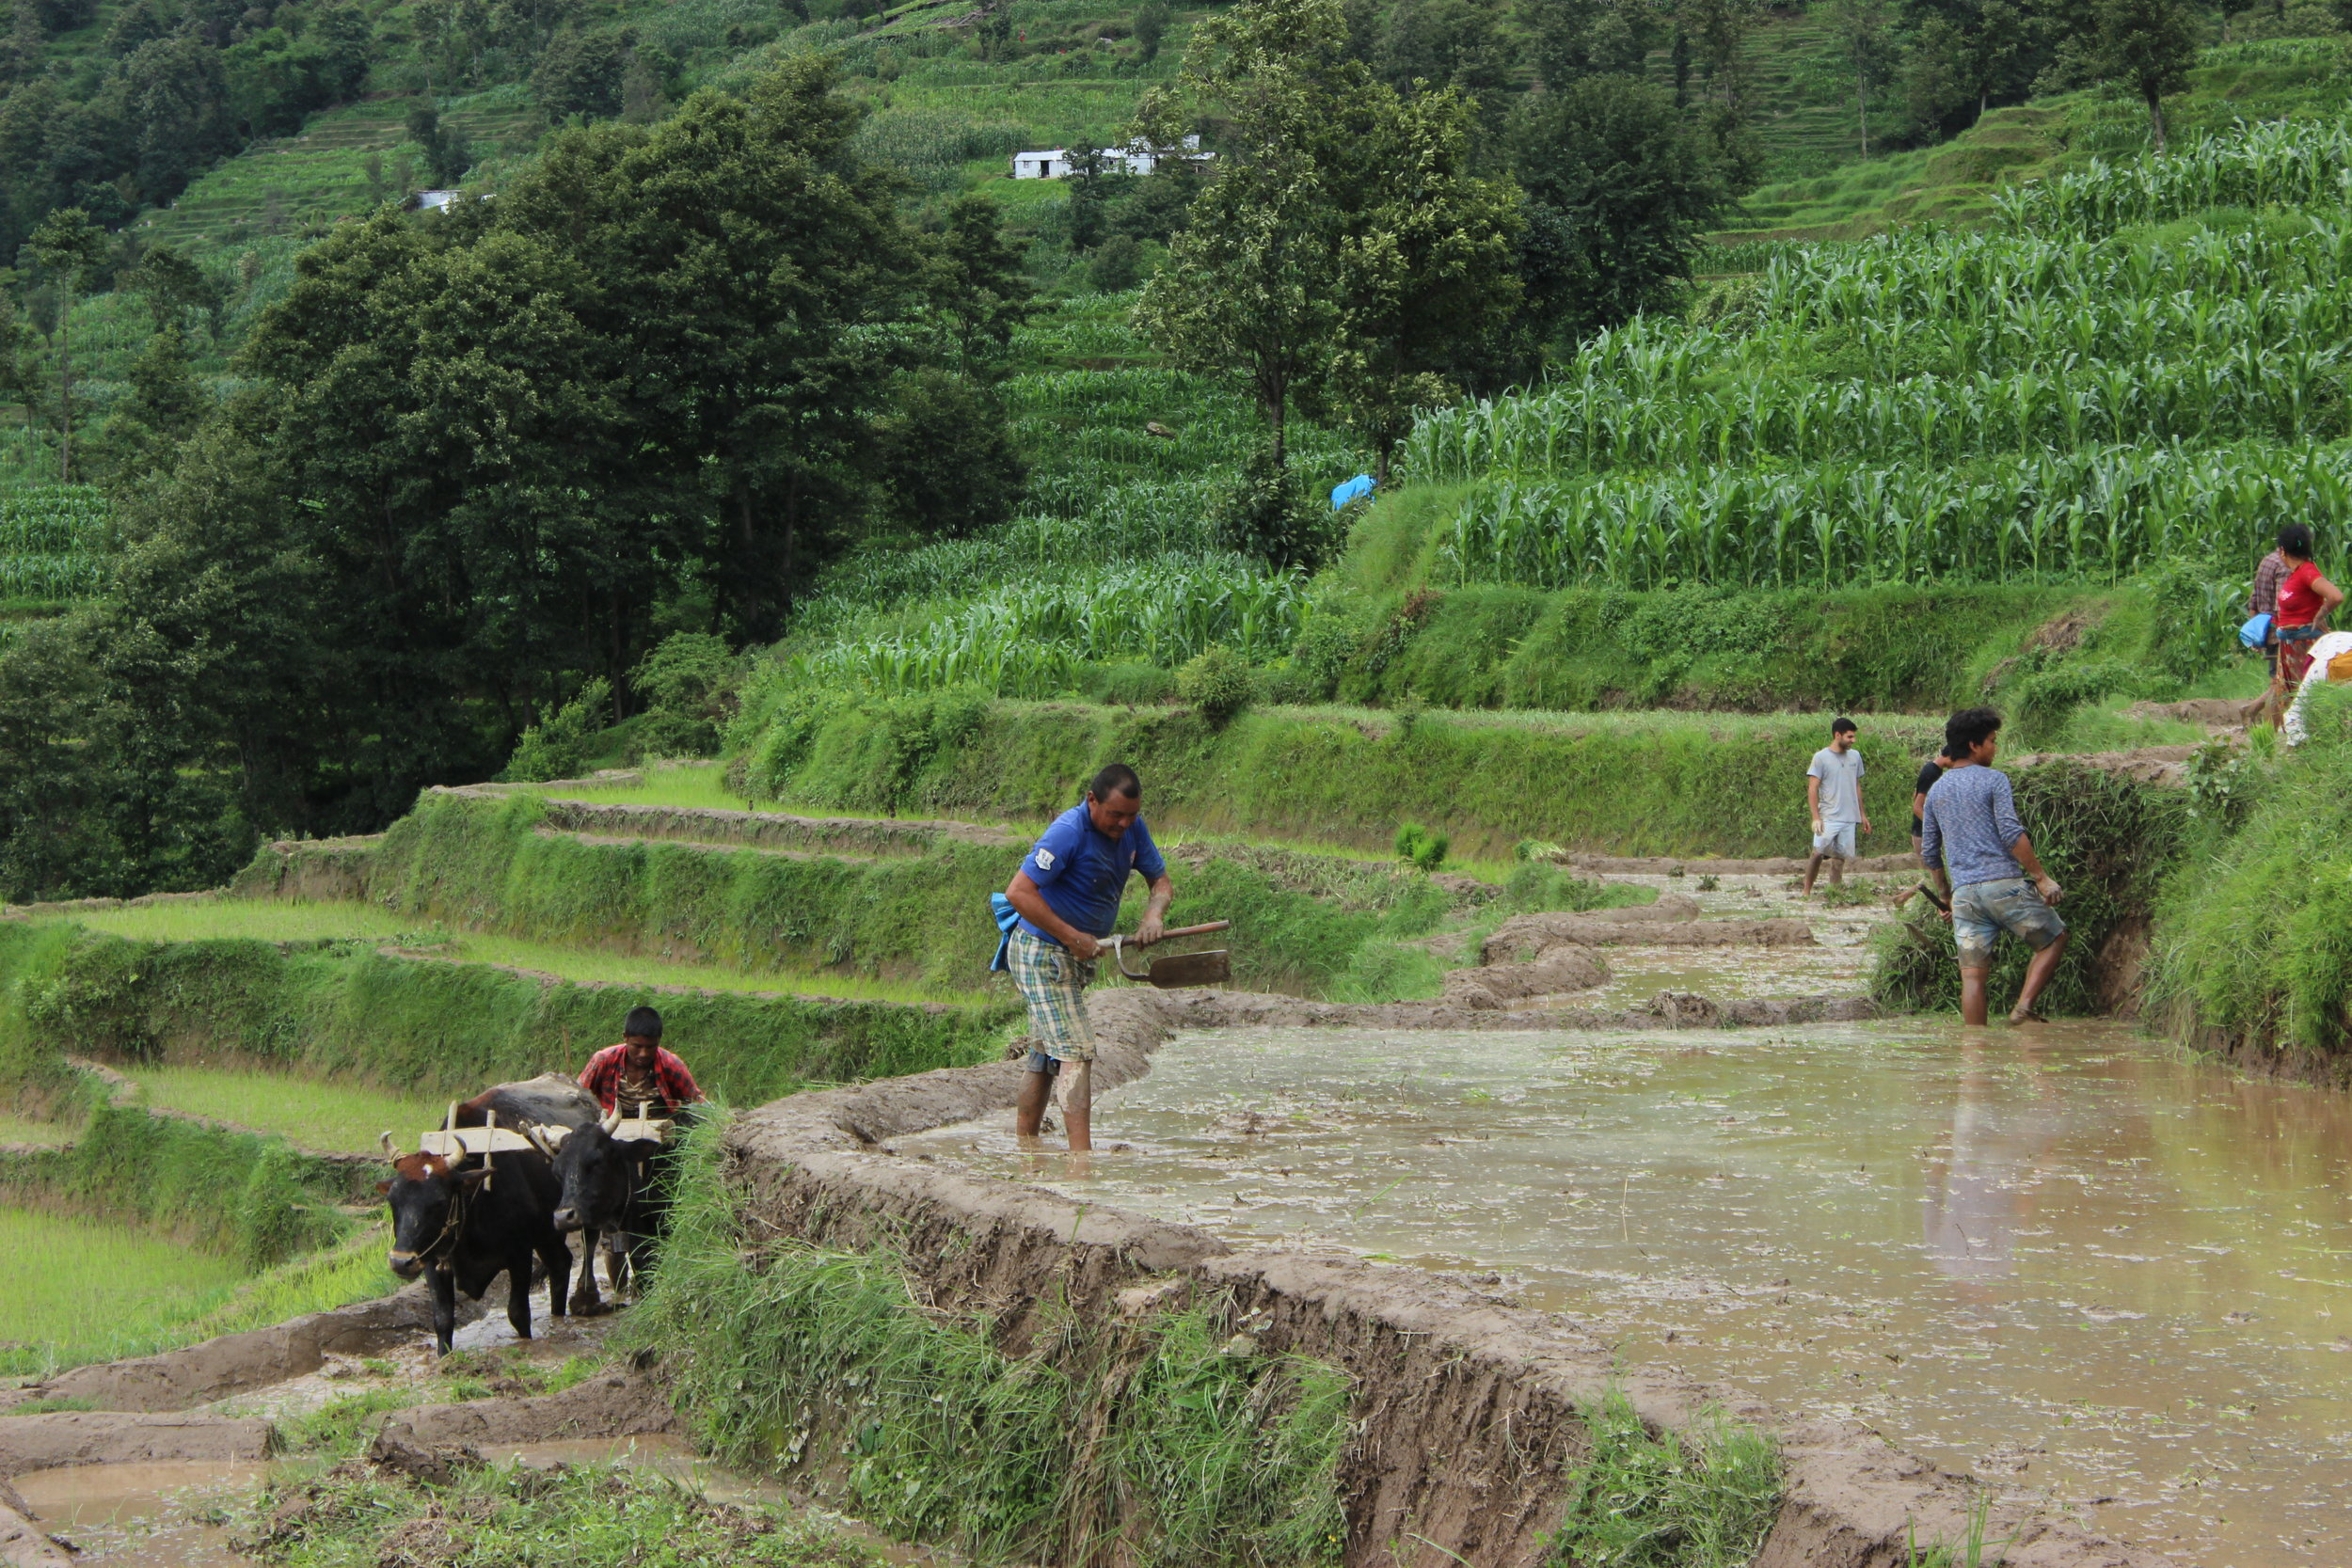 Working in Farms to Develop Agriculture